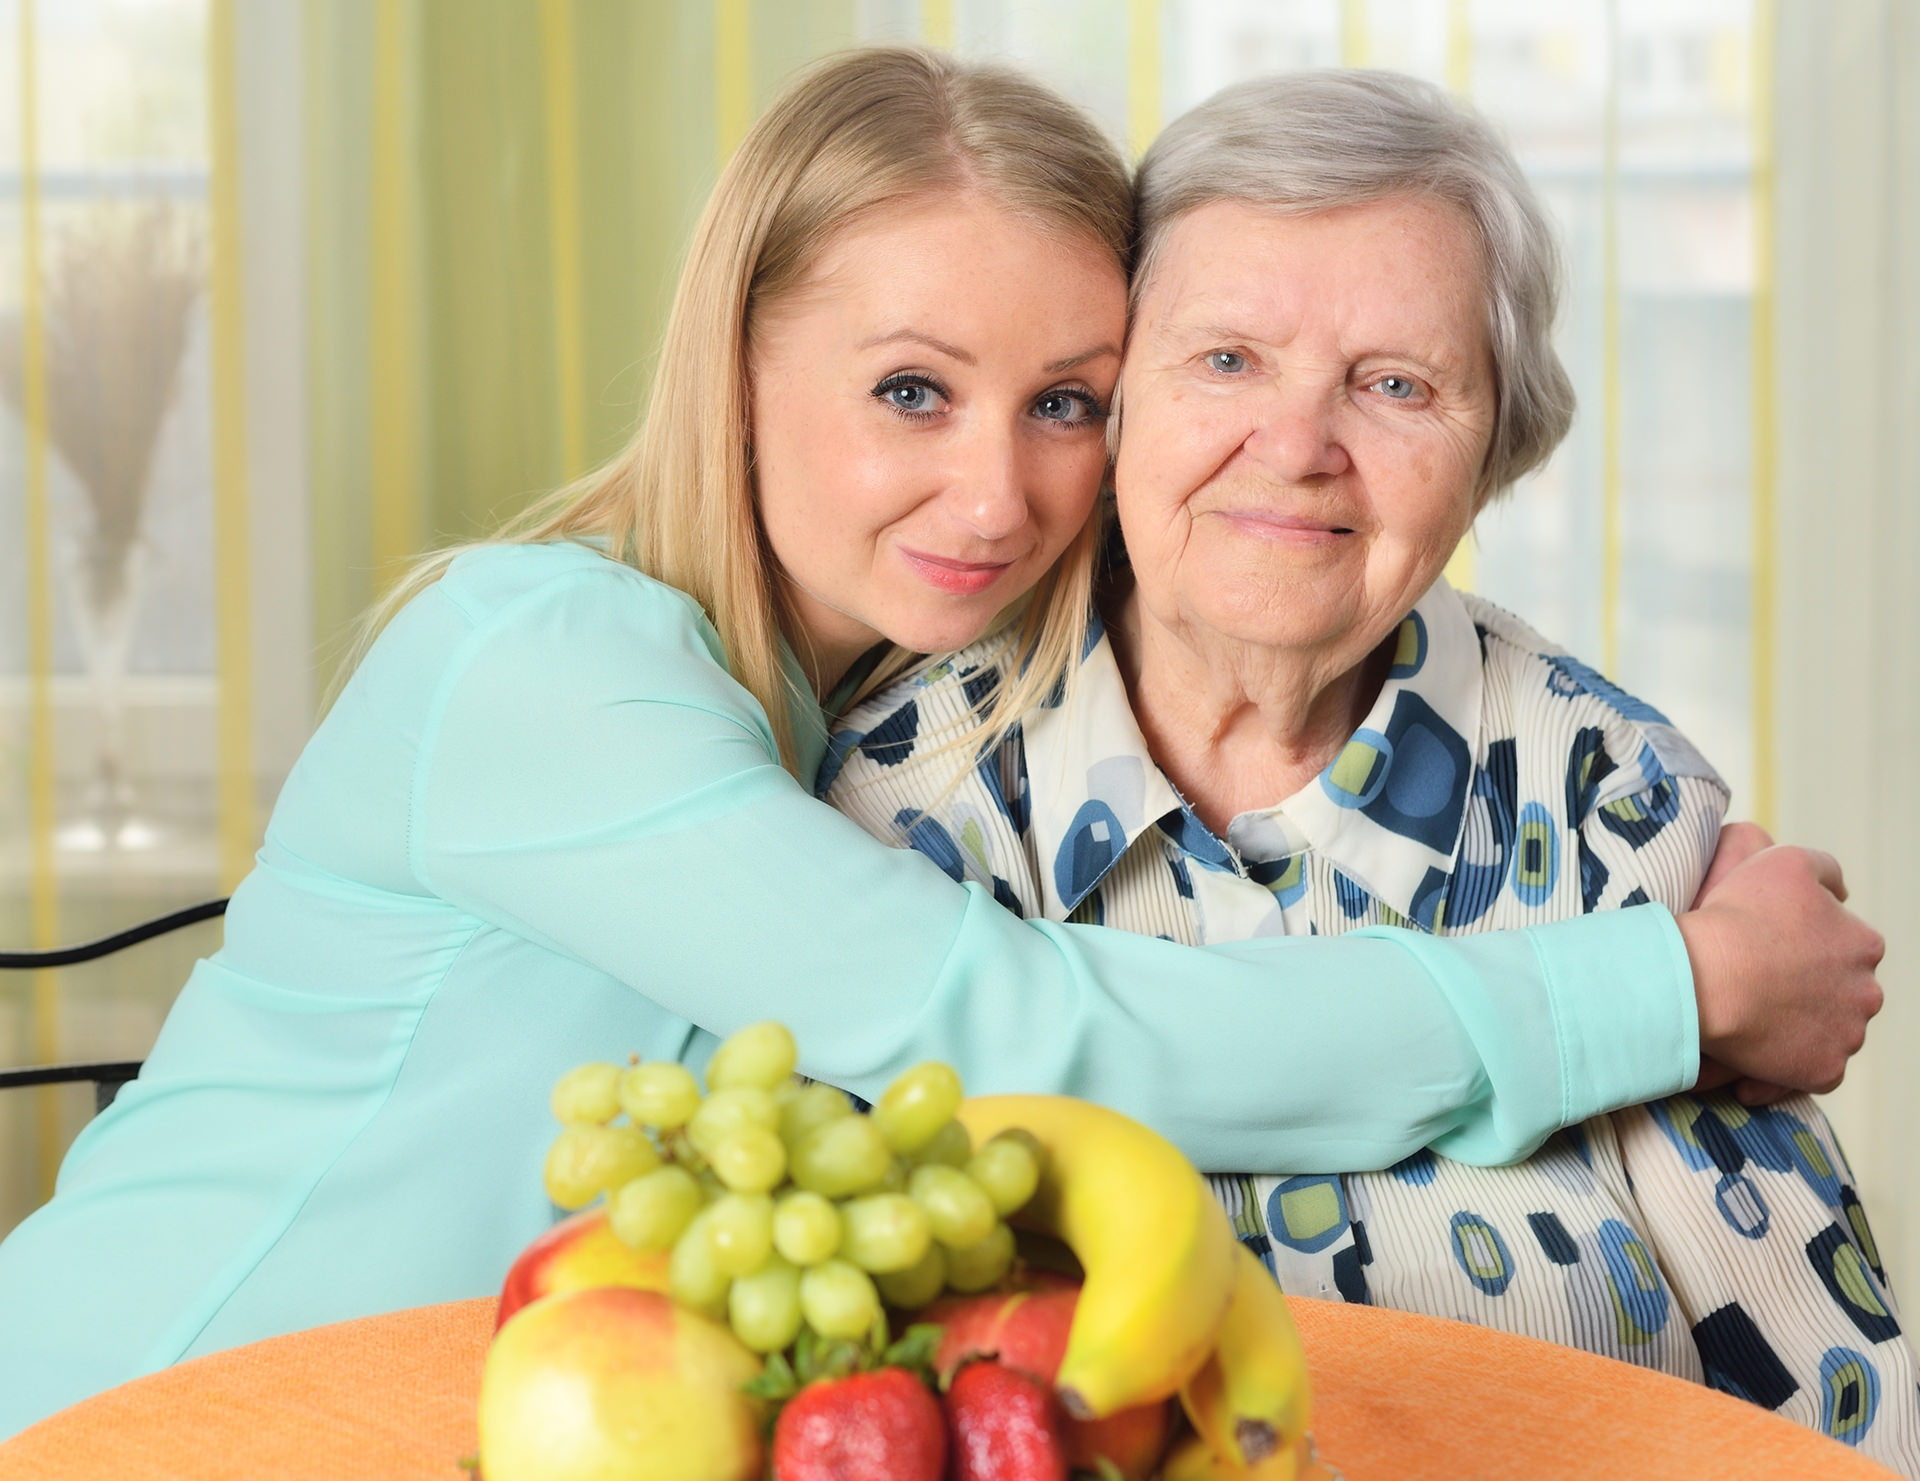 Senior woman with her caregiver women